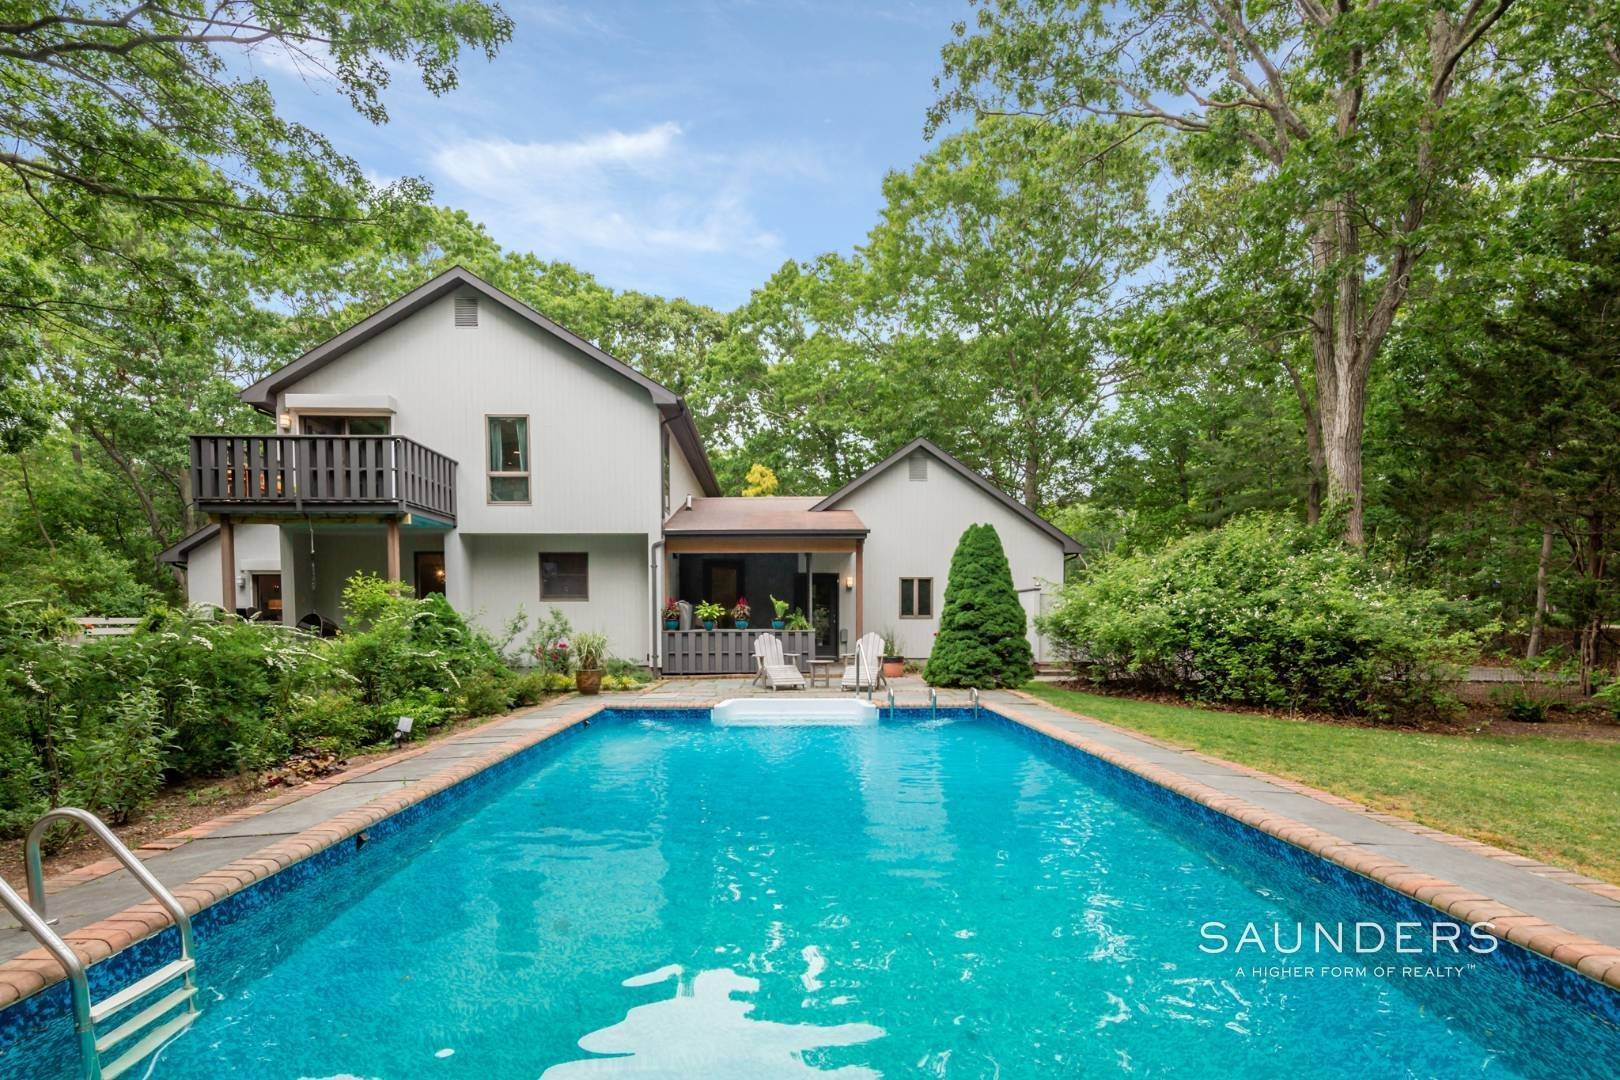 Single Family Homes at Immaculate Northwest Rental With Heated Pool And Hot Tub East Hampton, East Hampton Town, NY 11937